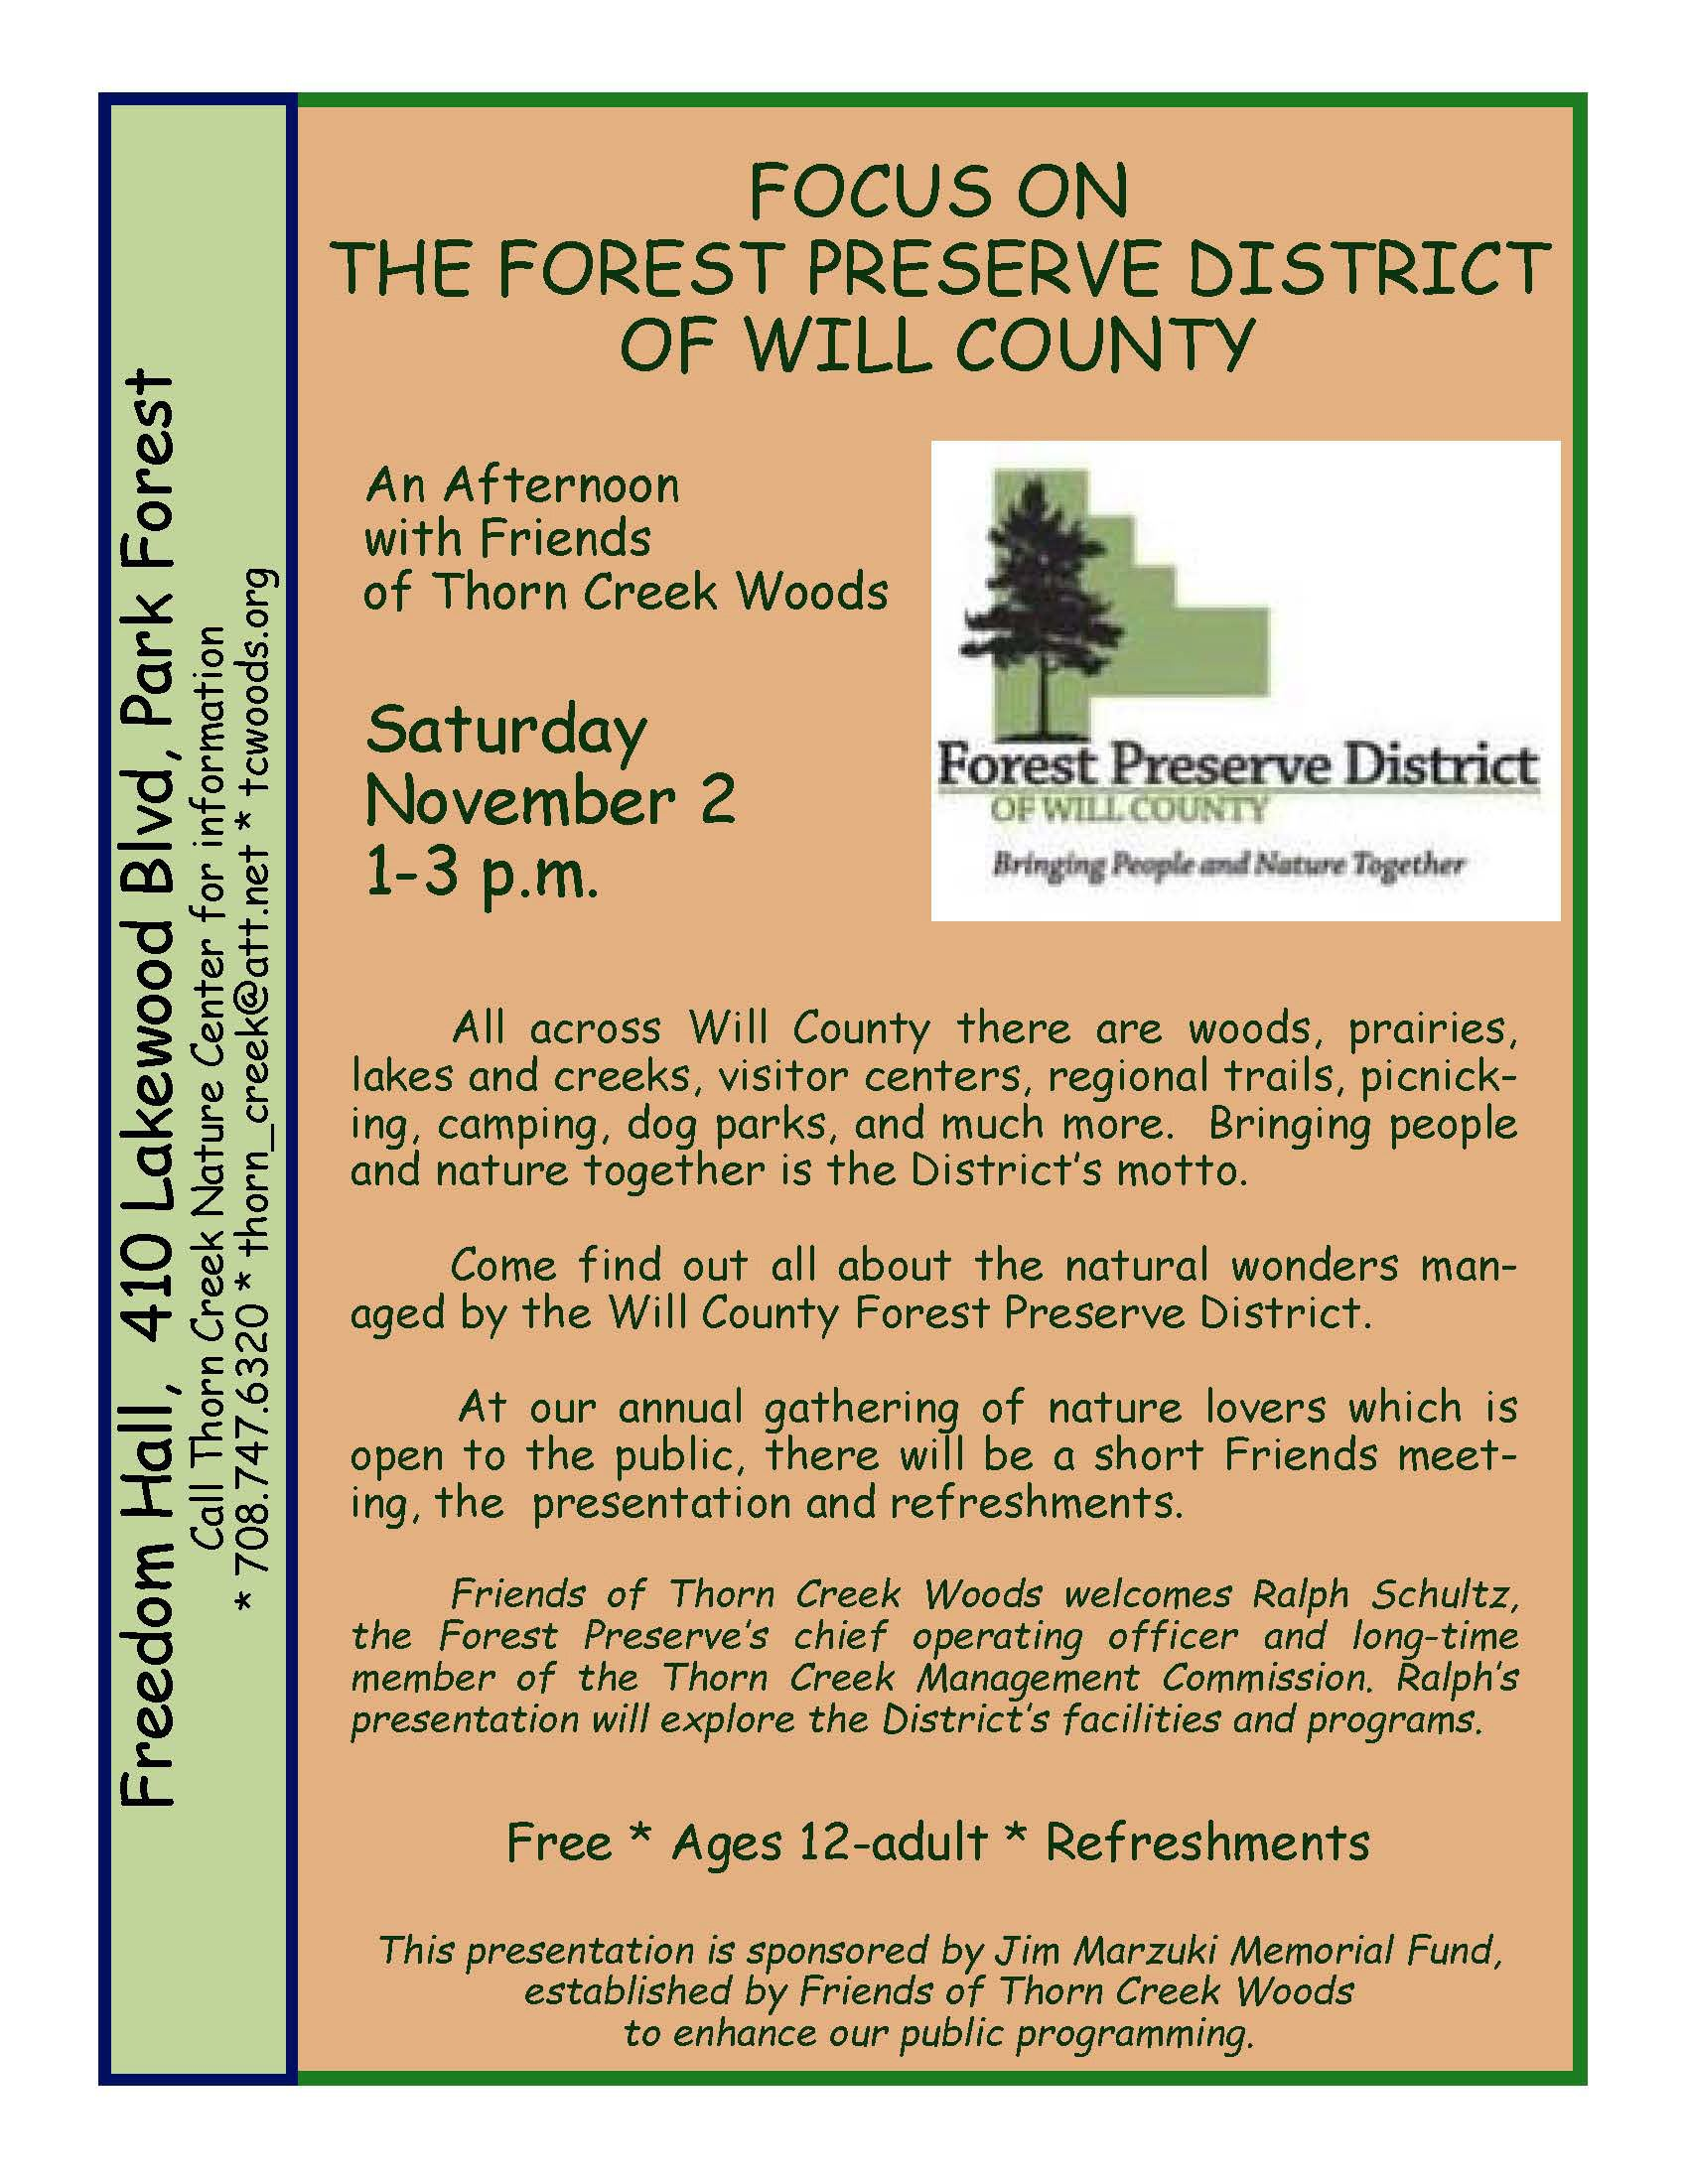 Focus on the Forest Preserve District of Will County 11_2_19